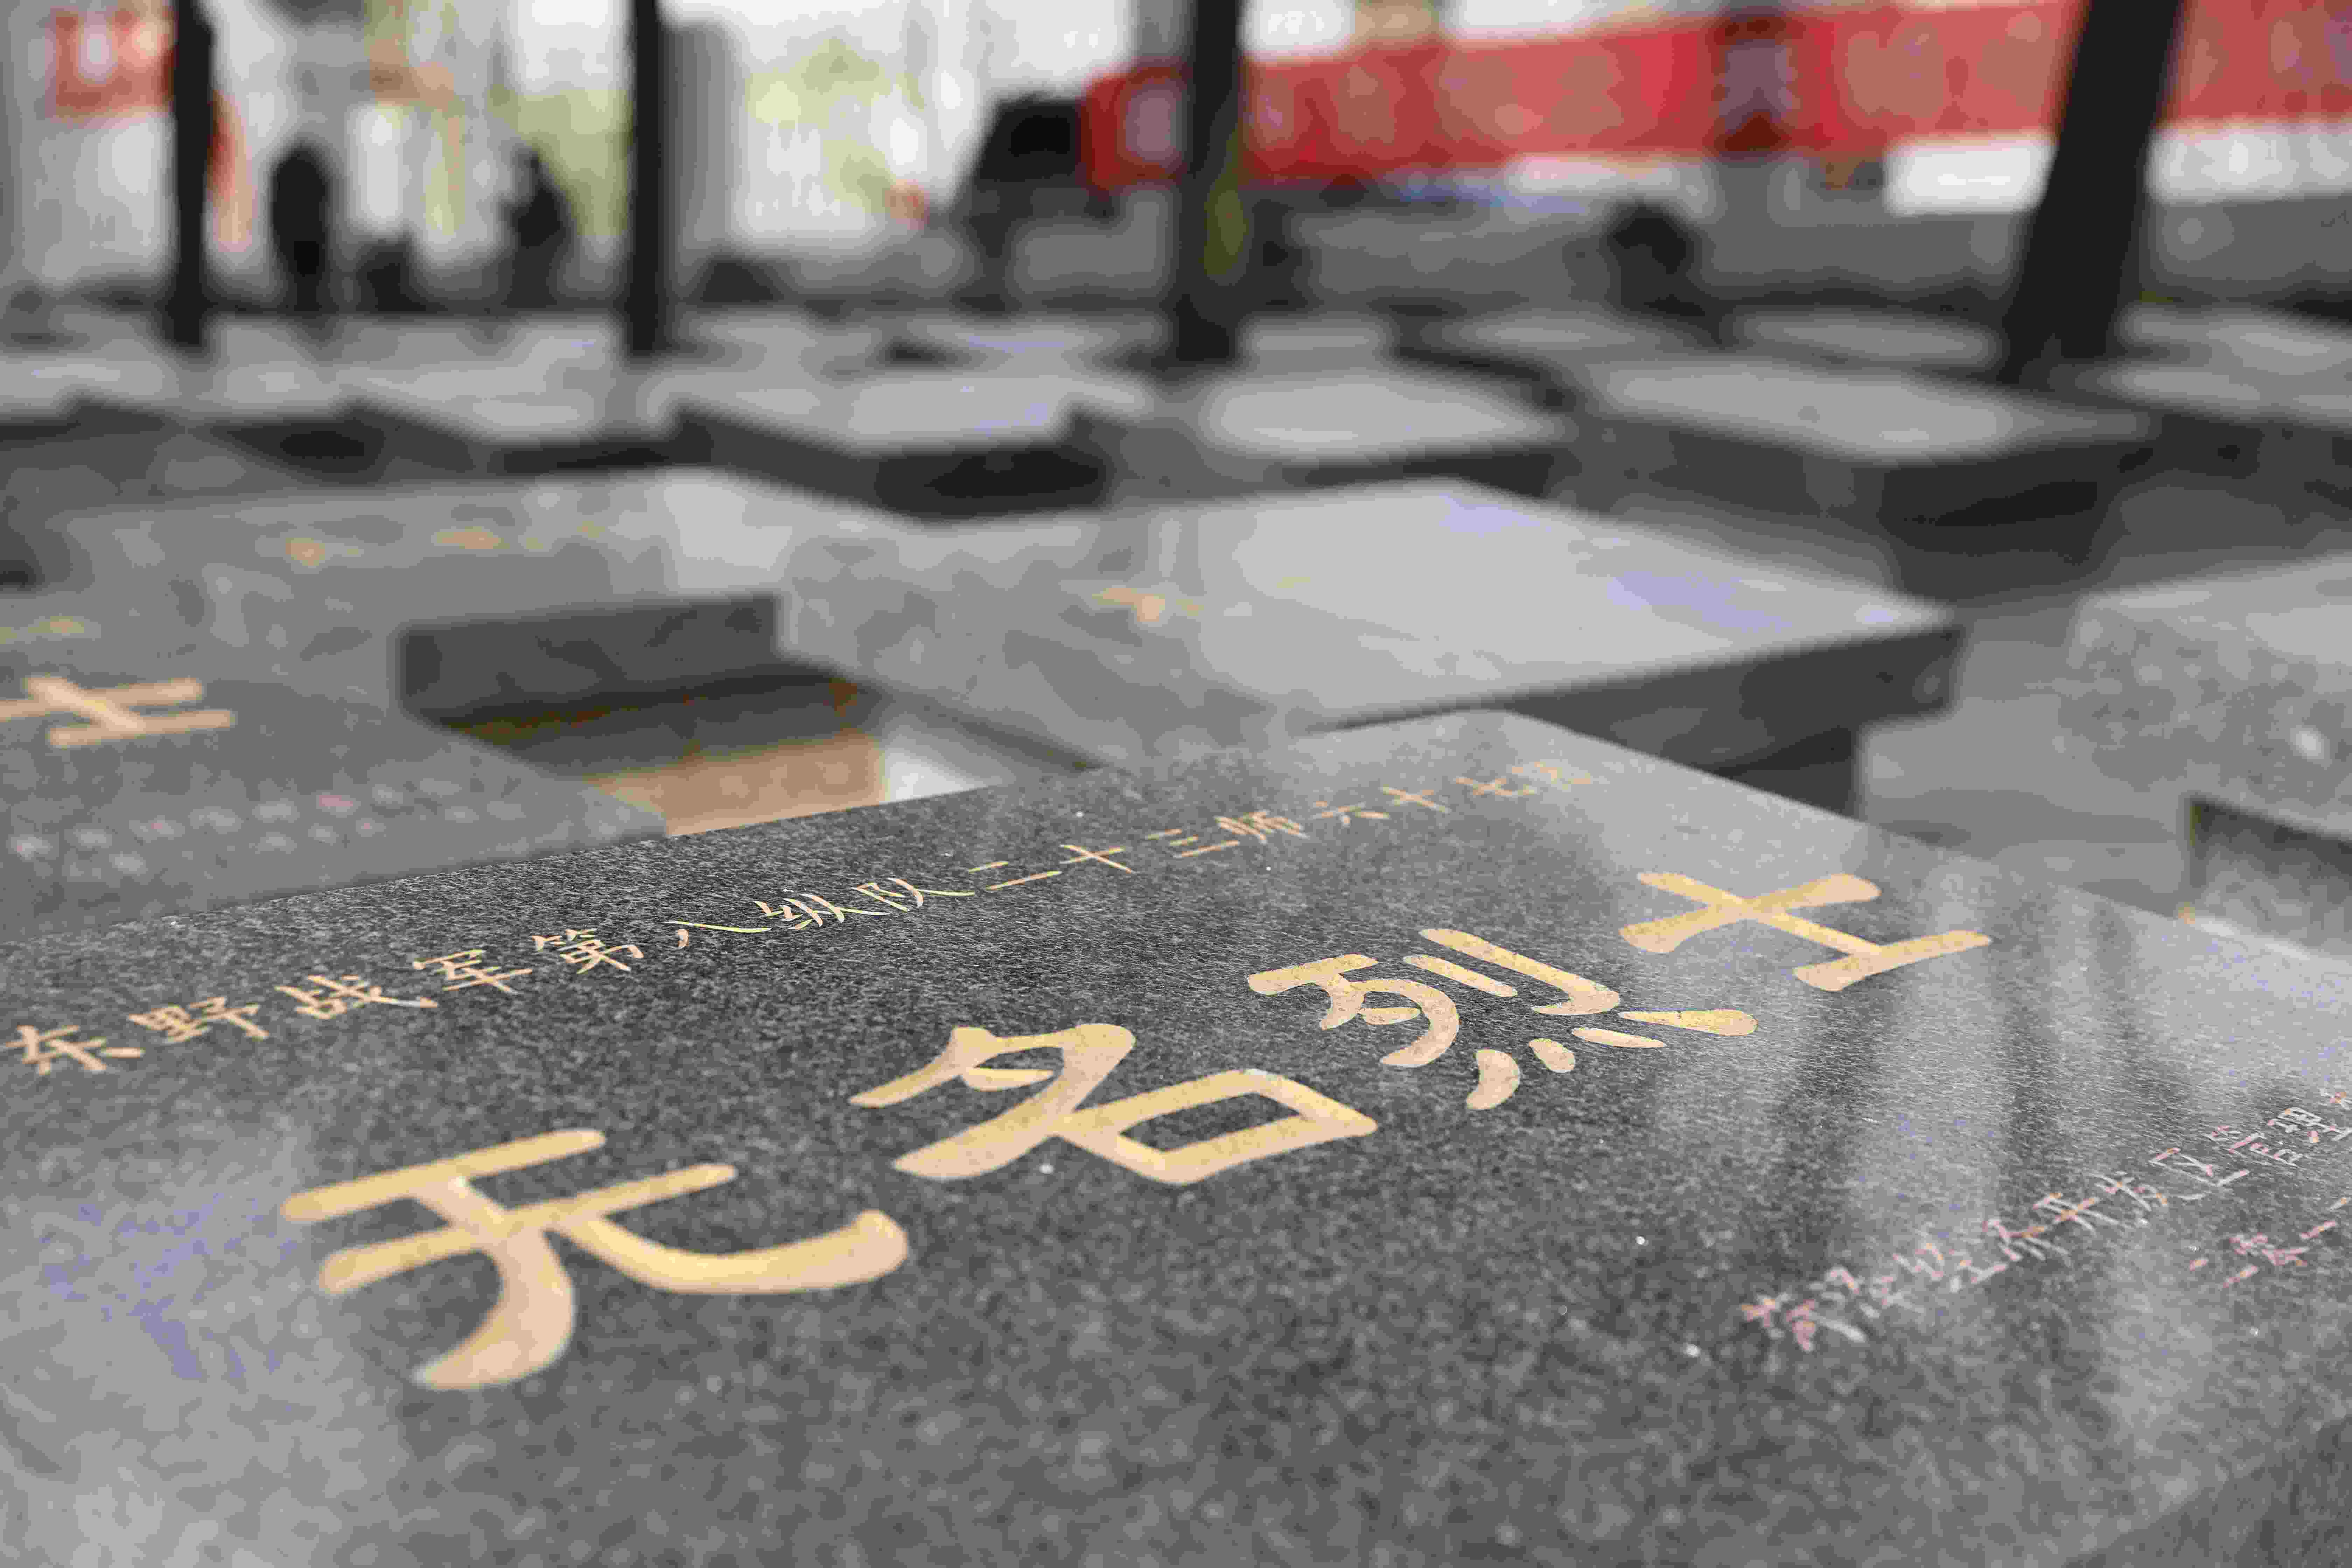 A PLA veteran's decade-long efforts to find homes for unknown KIAs